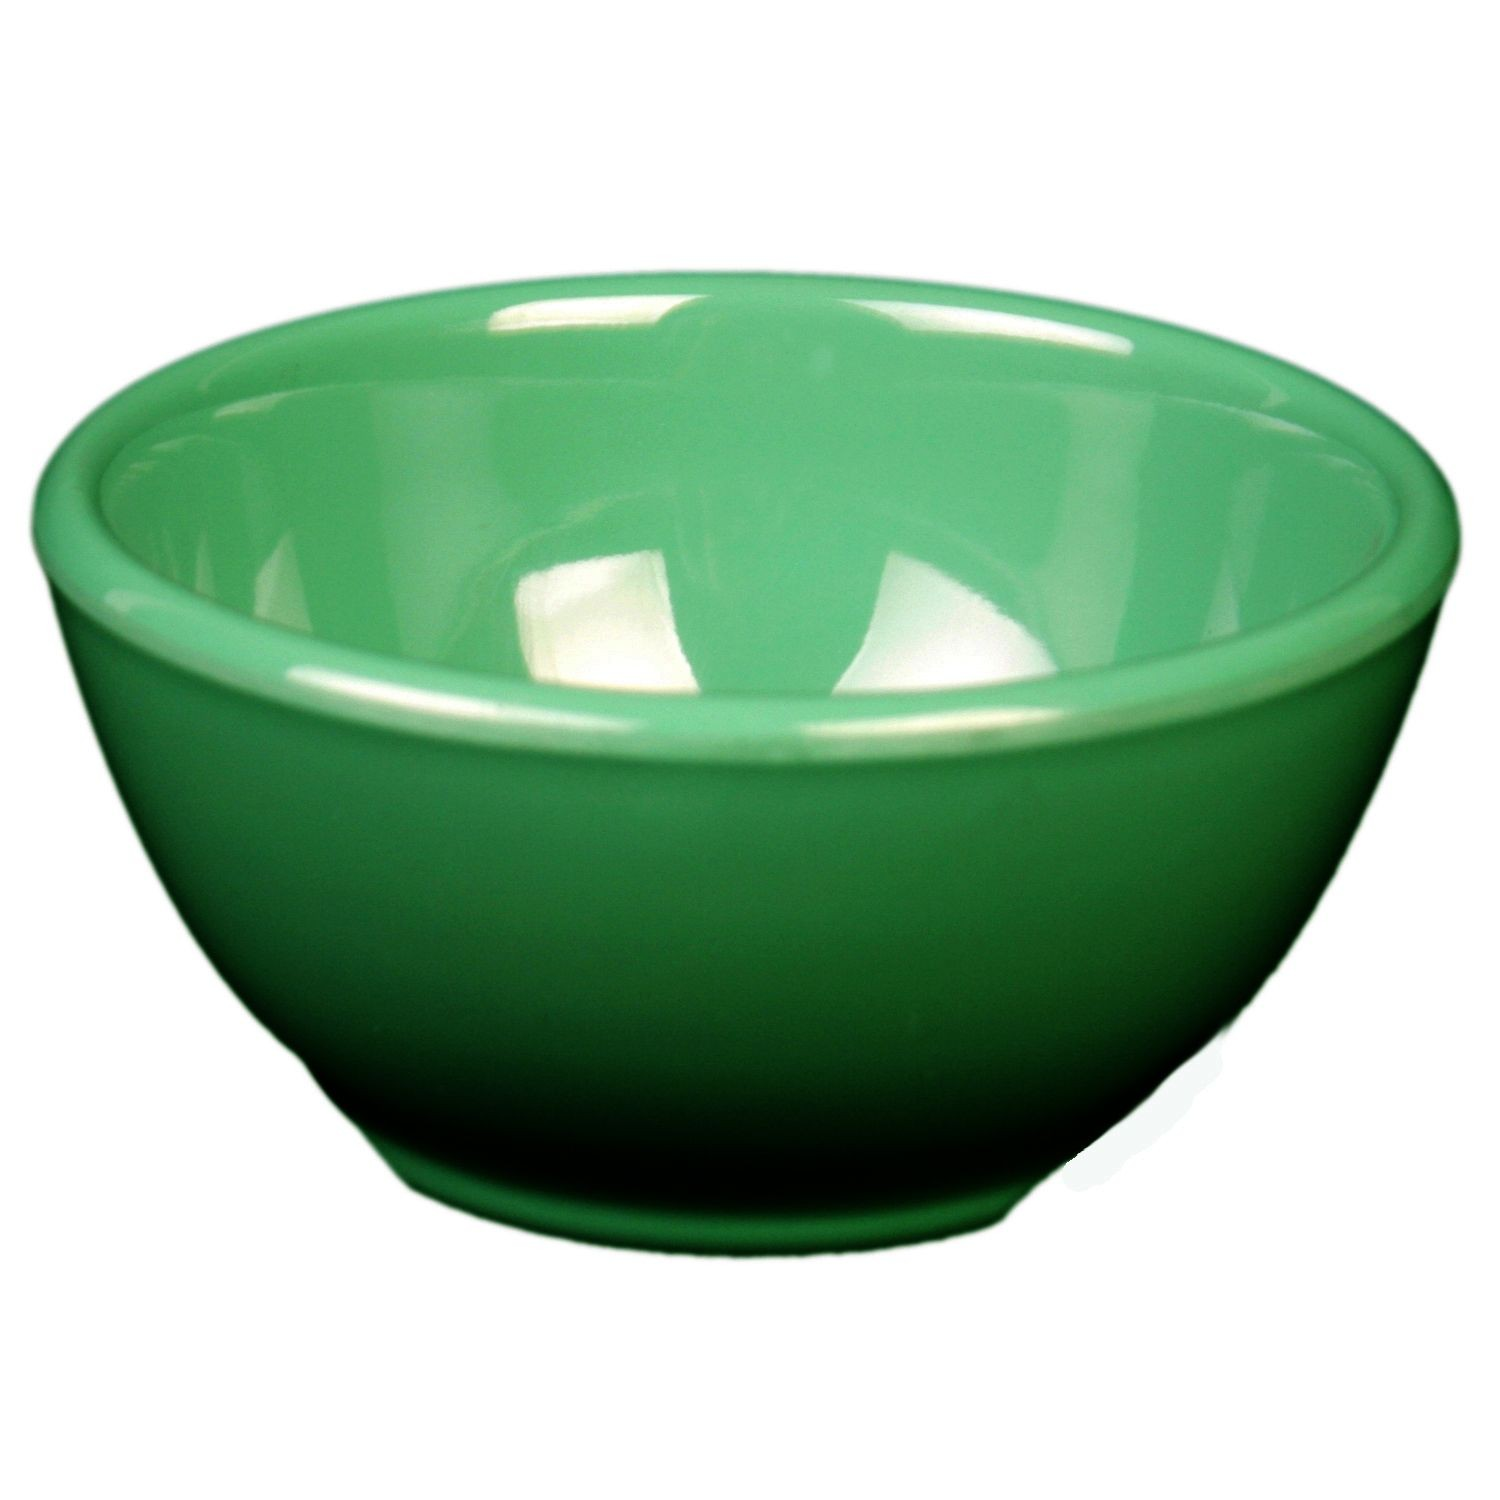 Thunder Group CR5804GR Green Soup Bowl 10 oz. - 1 doz